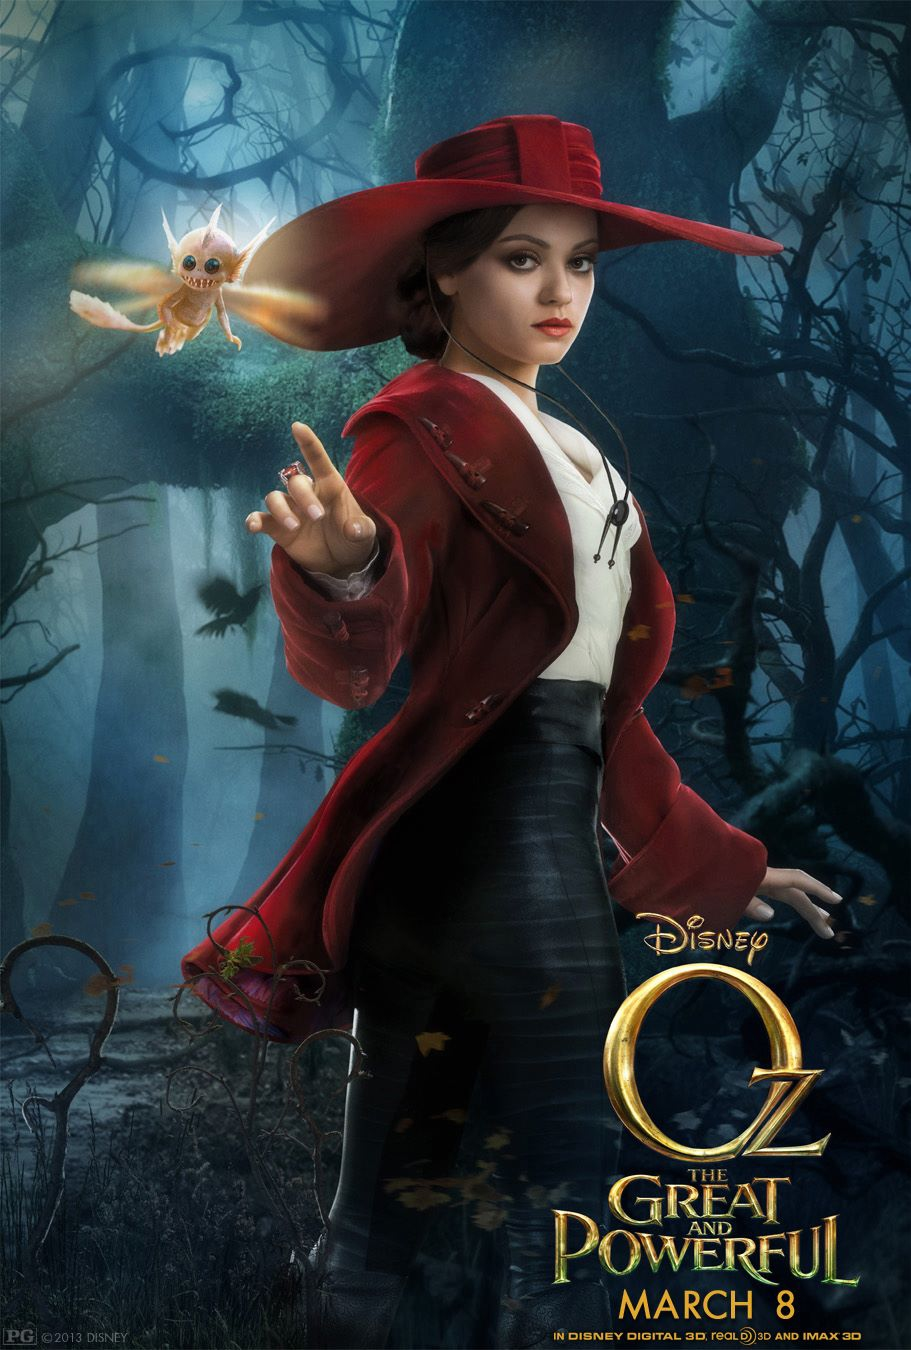 Oz the Great and Powerful - Movie Poster #7 (Original)